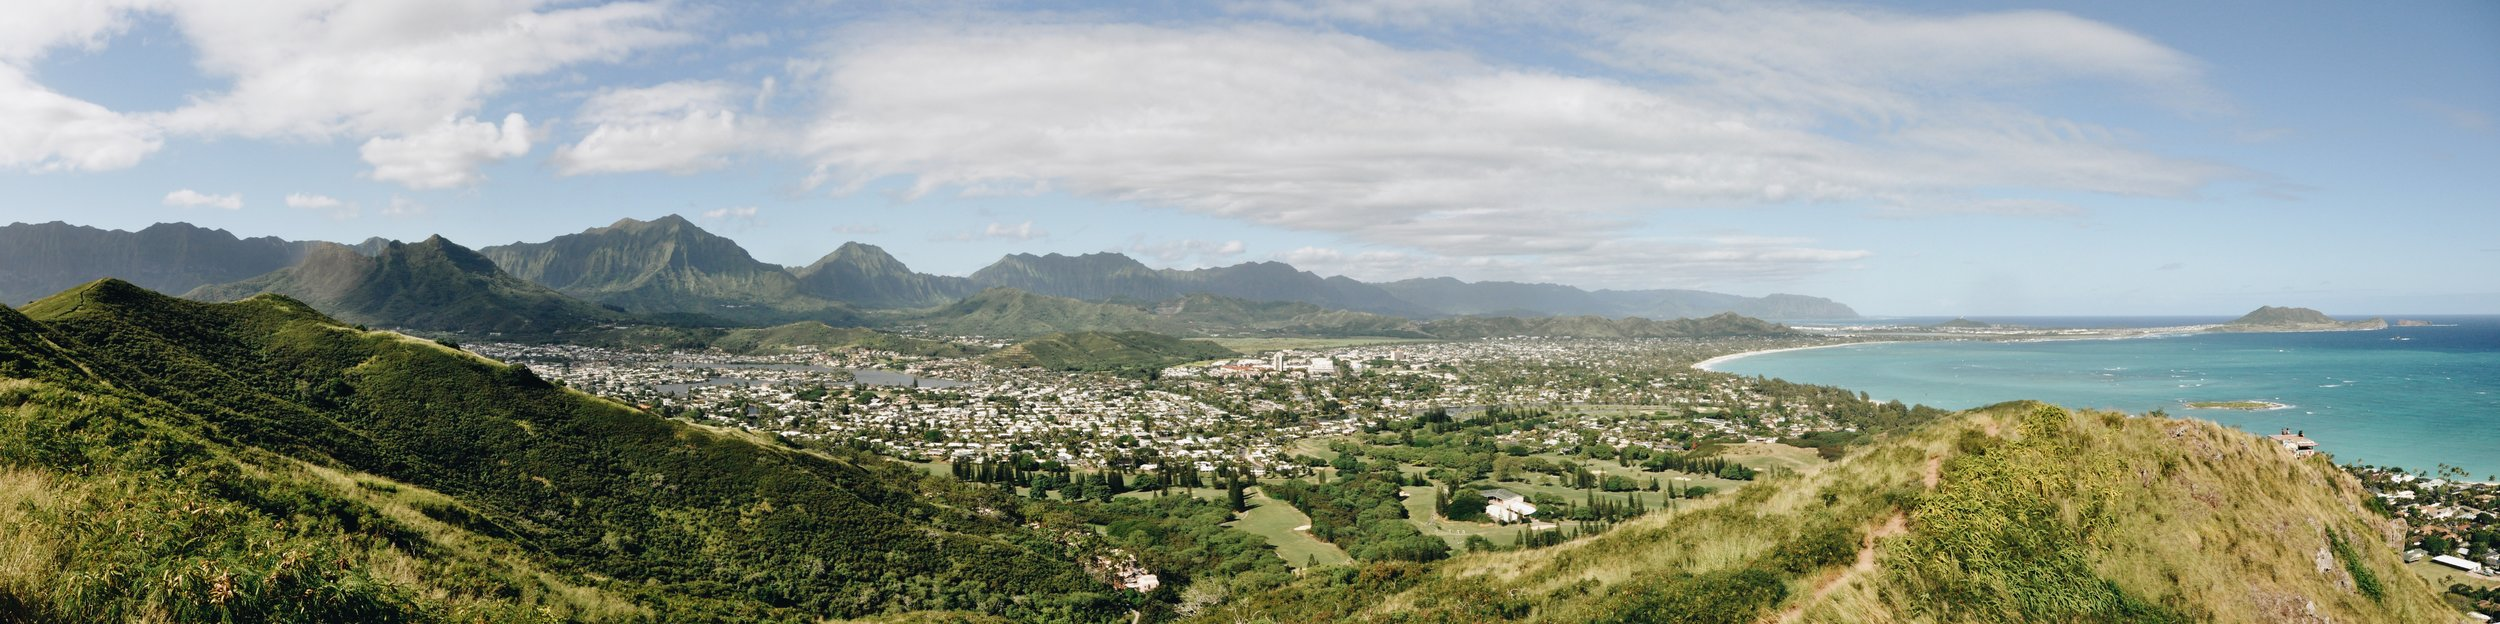 View from the Pillbox Hiking Trail. Photo by Steve Mair.